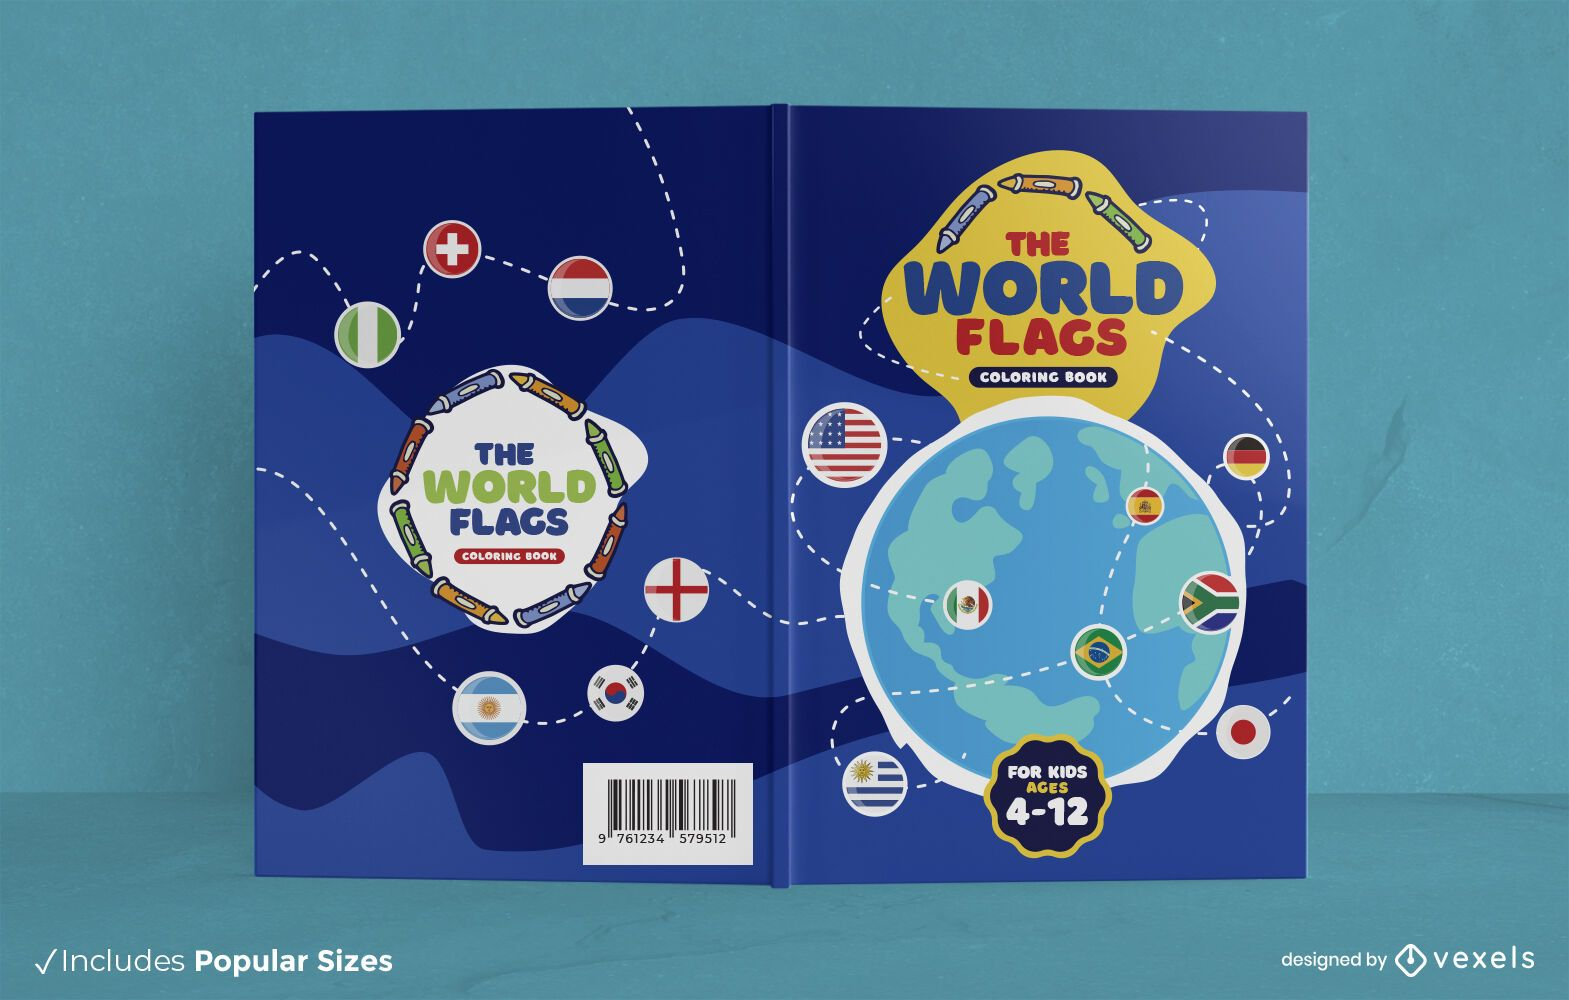 World flags book cover design